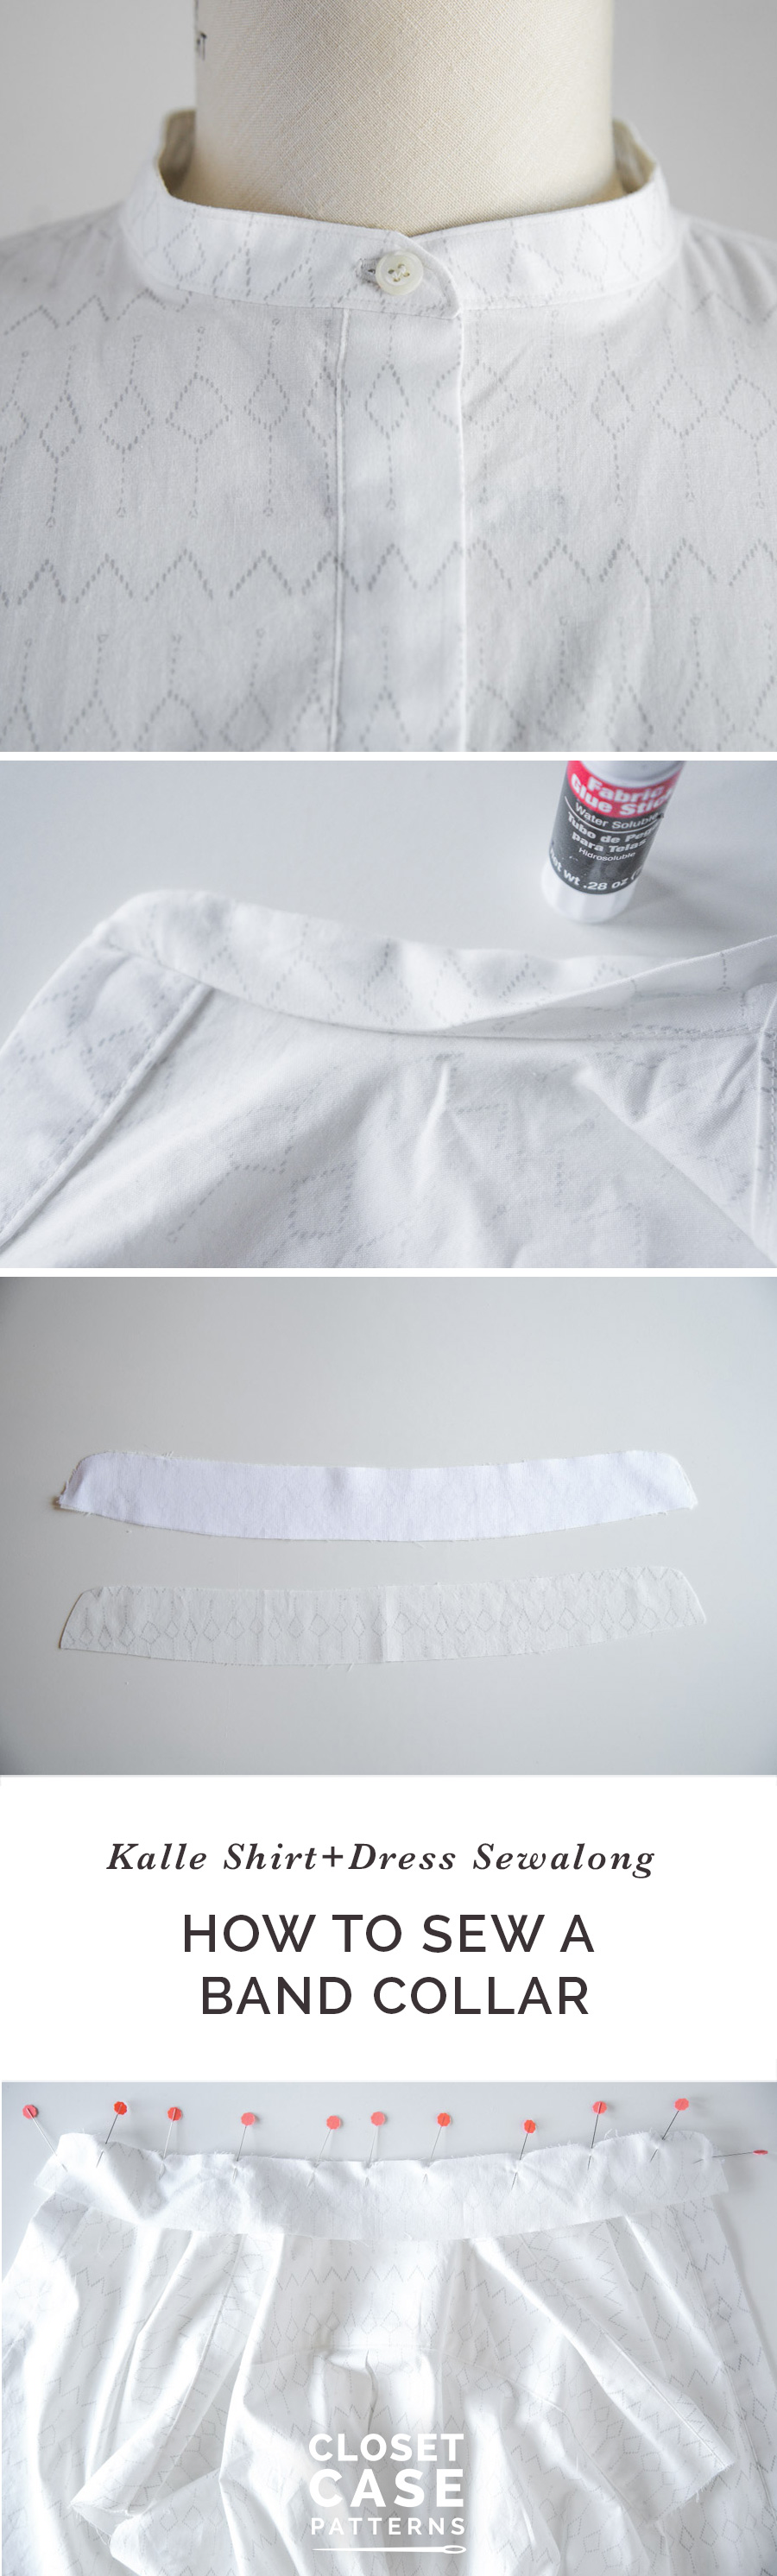 Easy tutorial to sew a  band collar or stand collar // Closet Case Patterns {permalink}